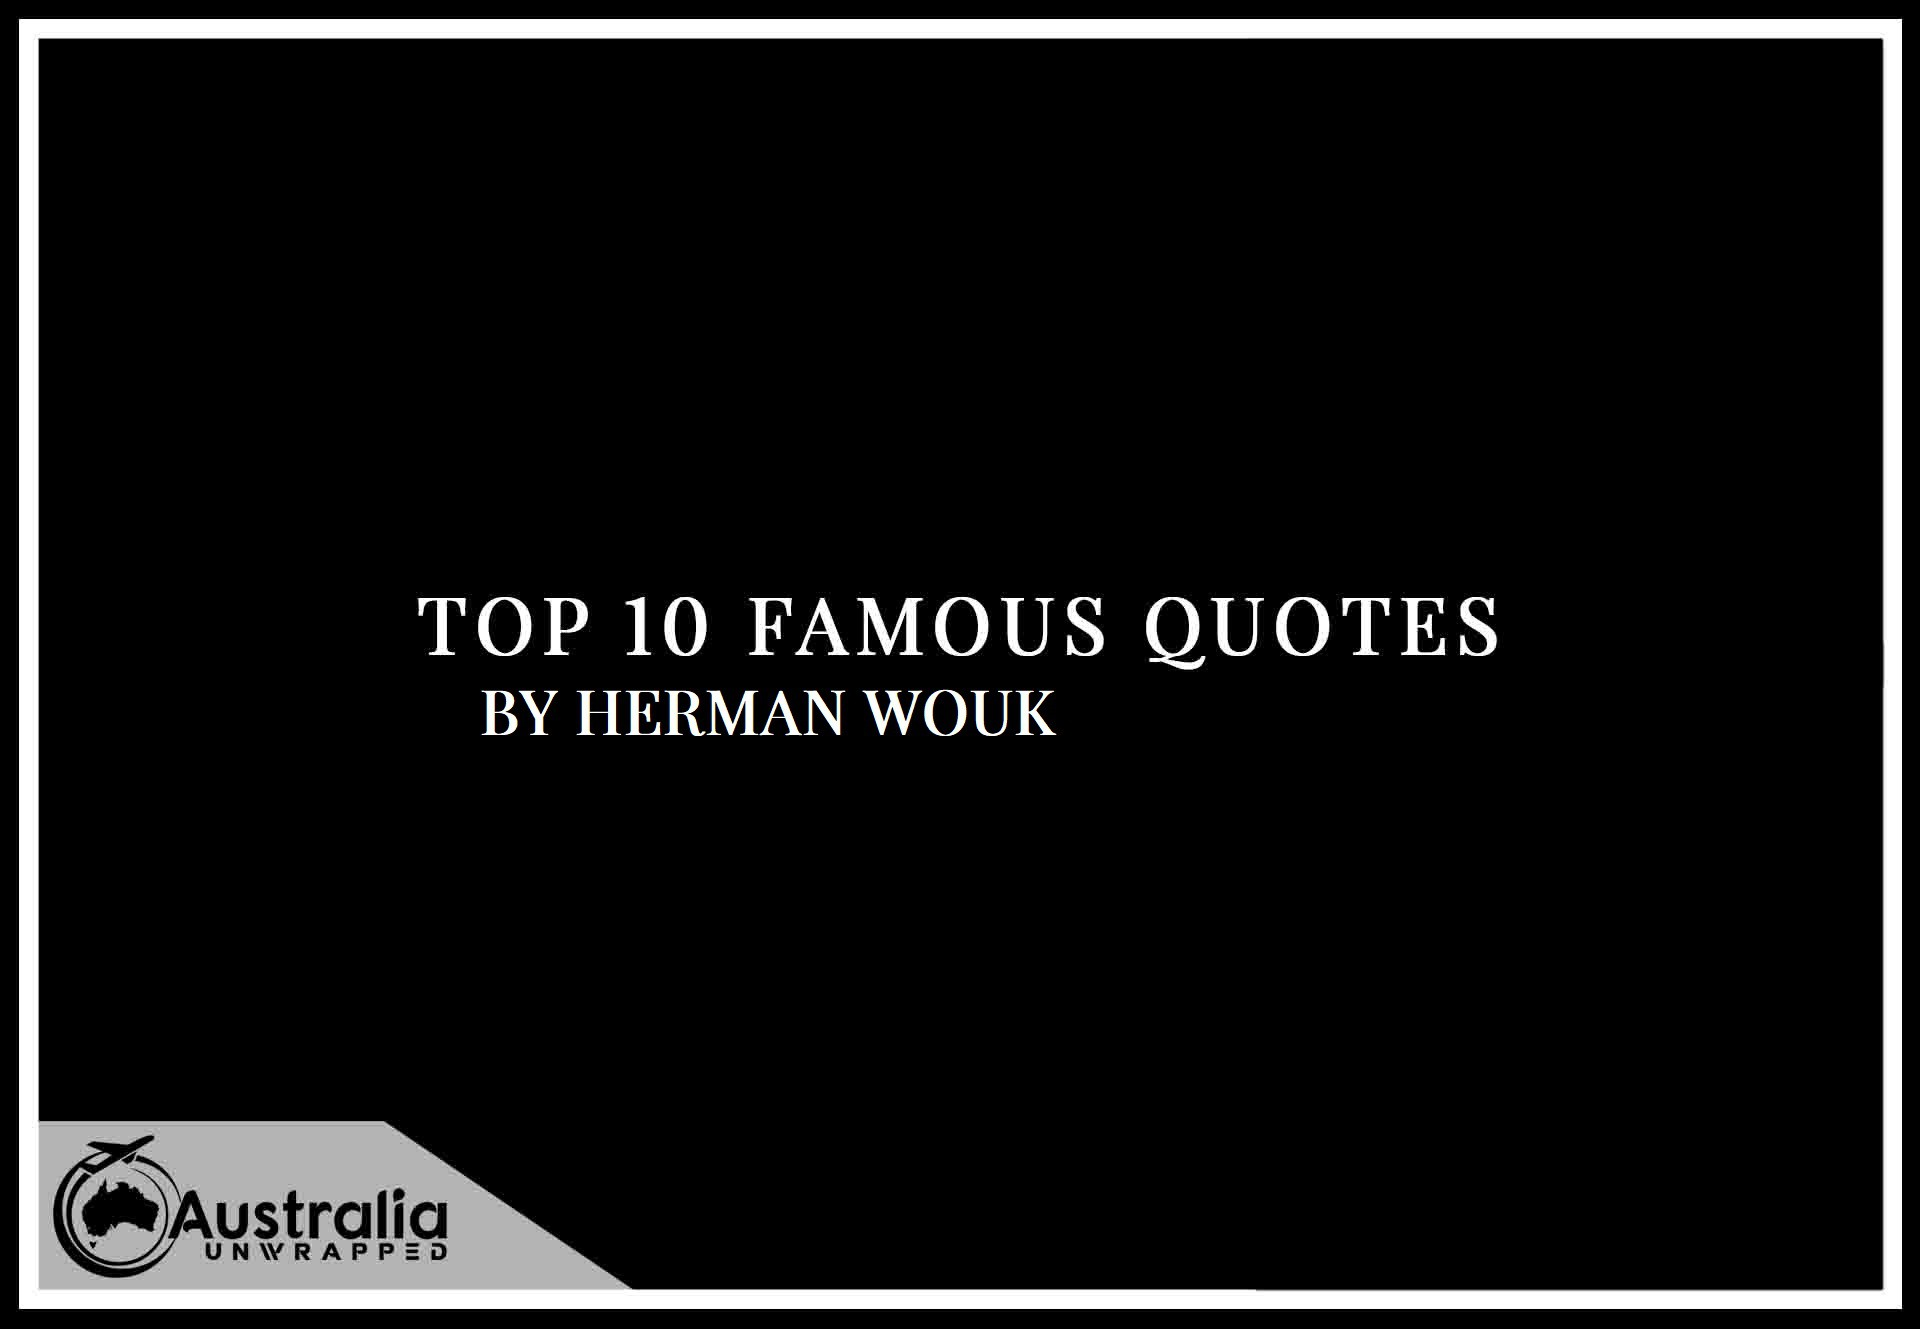 Top 10 Famous Quotes by Author Herman Wouk